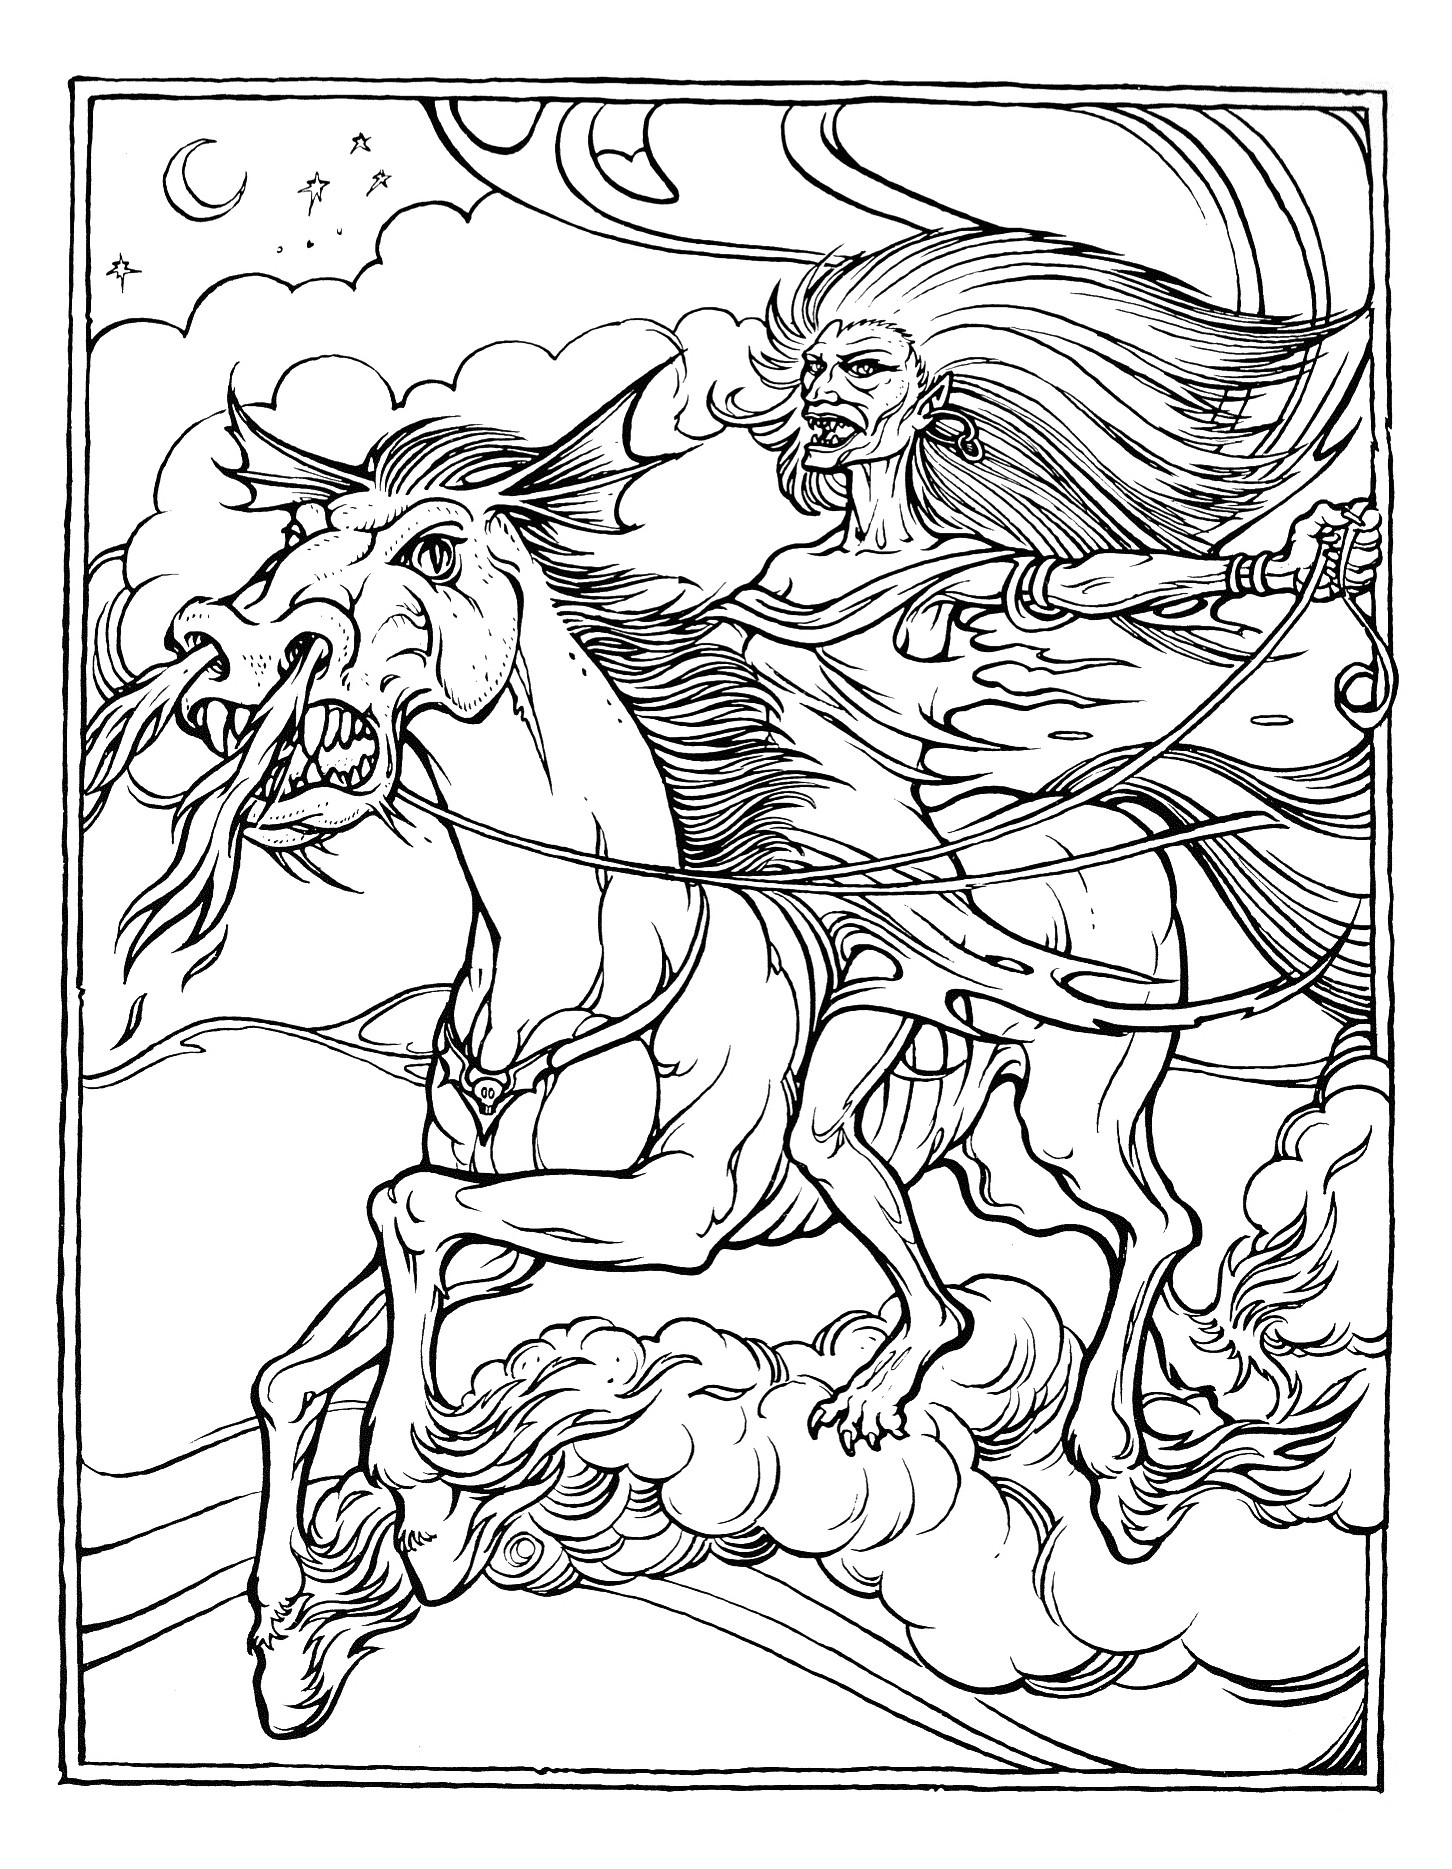 Coloring Pages For Adults Difficult  Dragon Coloring Pages